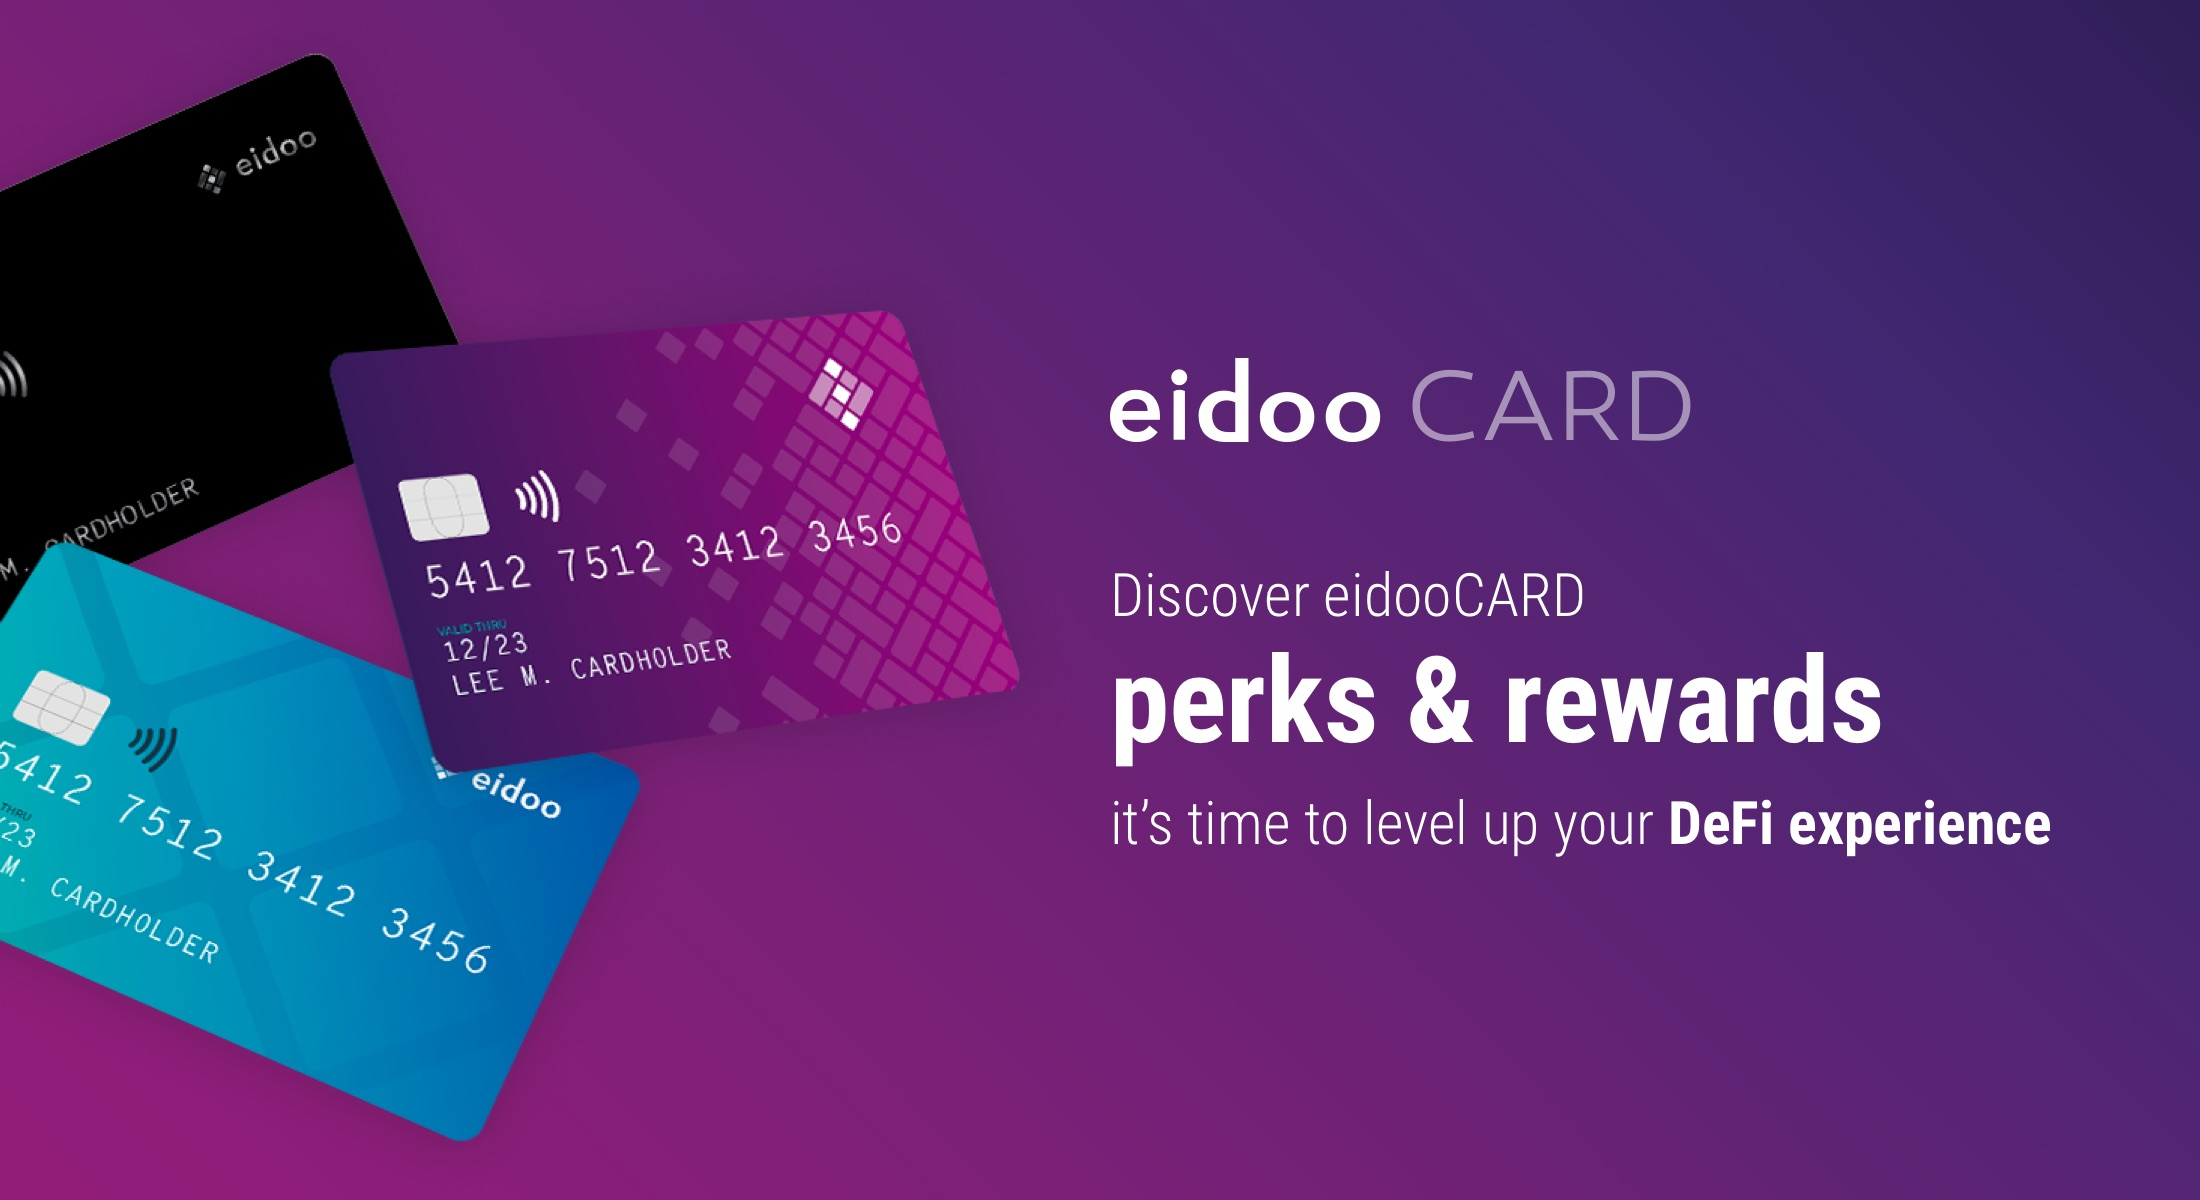 eidoo card rewards